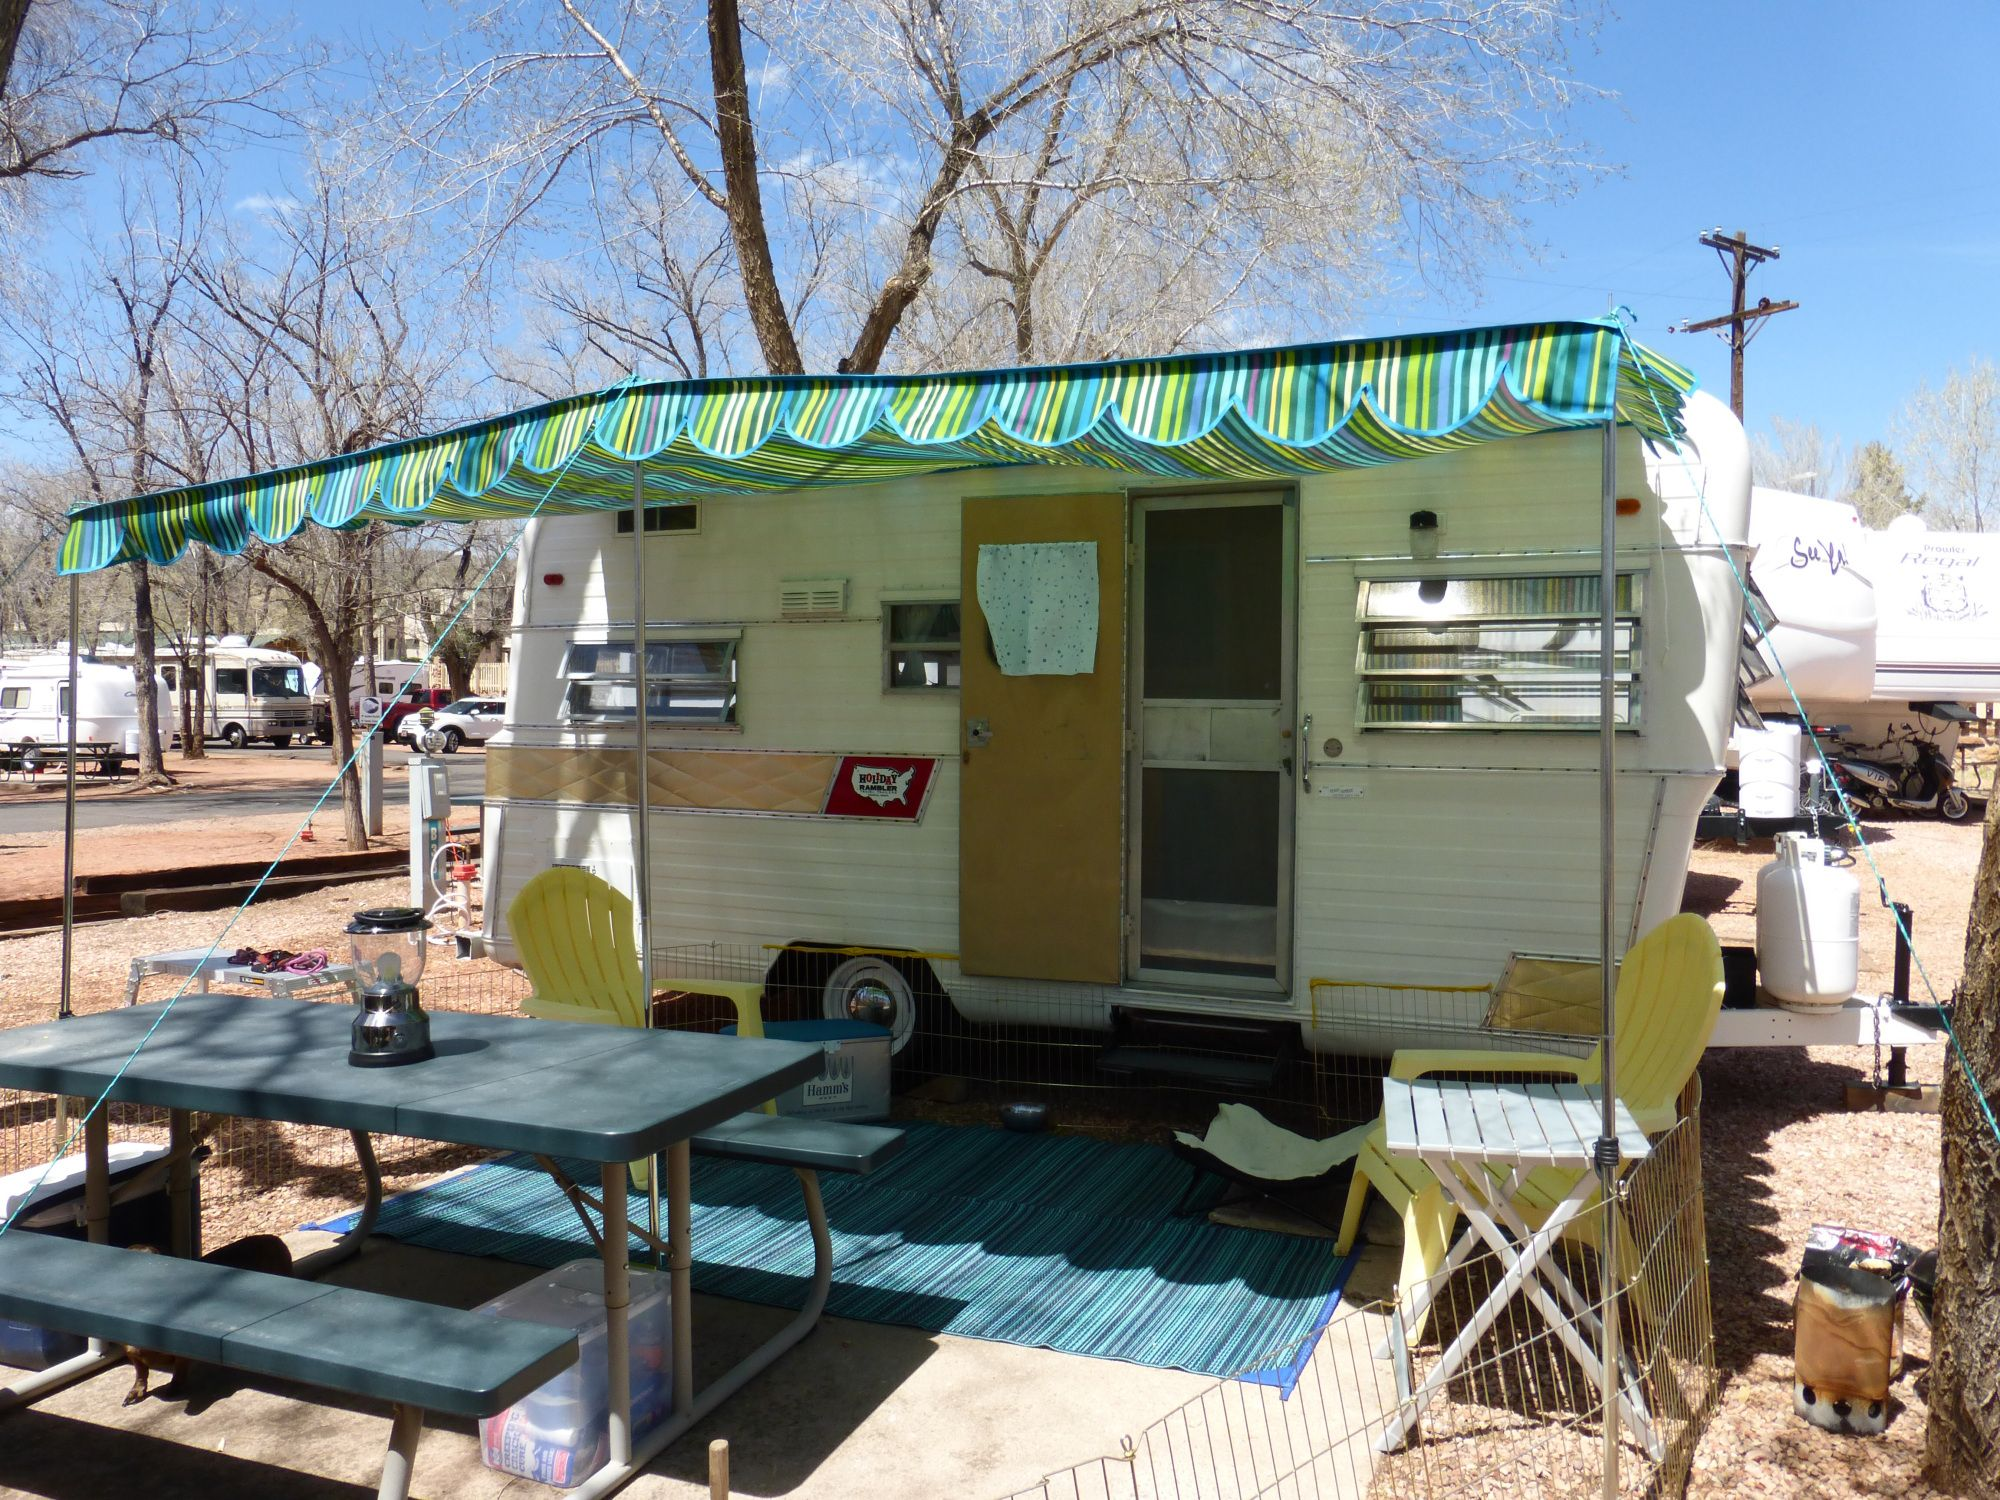 Holiday Rambler Awning Caravan Awnings Camper Awnings